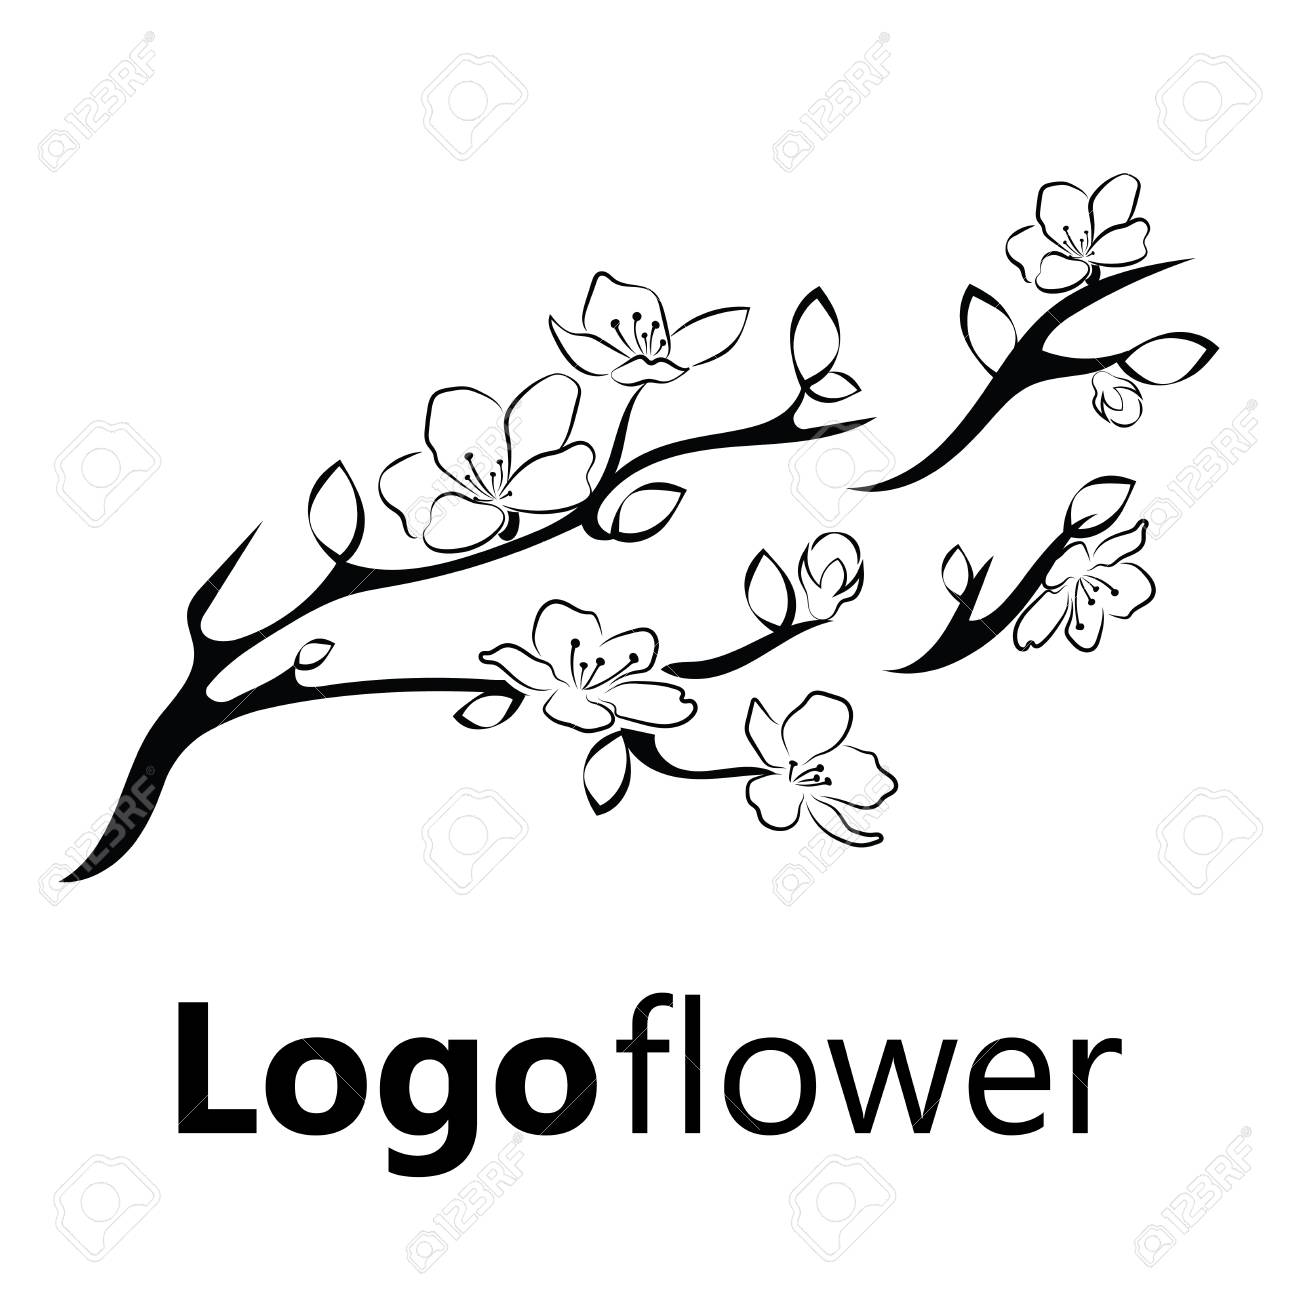 how to draw a cherry blossom tree cherry blossom drawing outline at getdrawings free download draw blossom tree how a cherry to